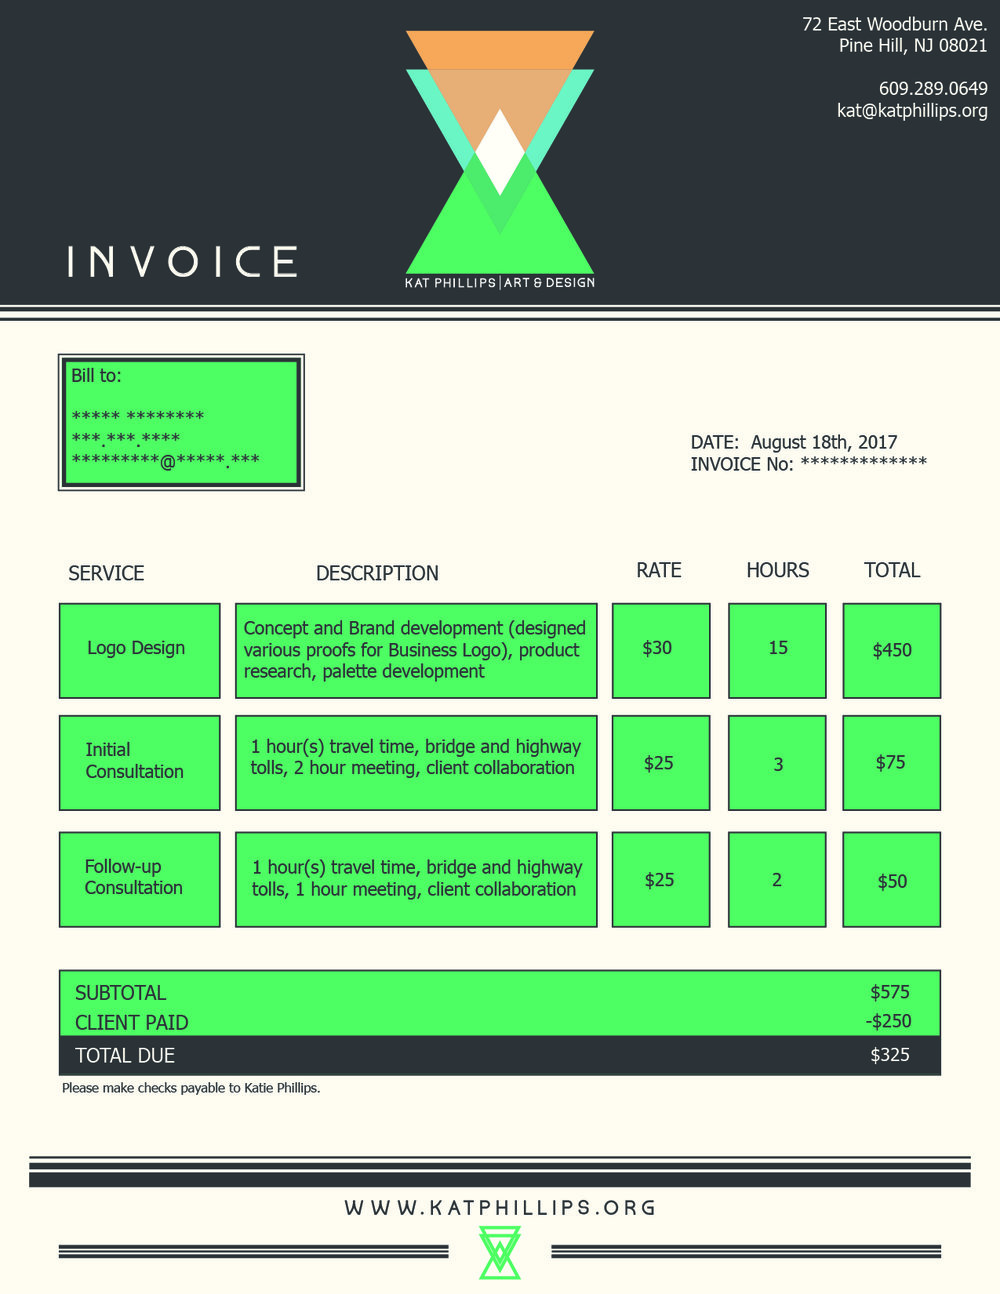 KAT PHILLIPS ART AND DESIGN INVOICE.jpg